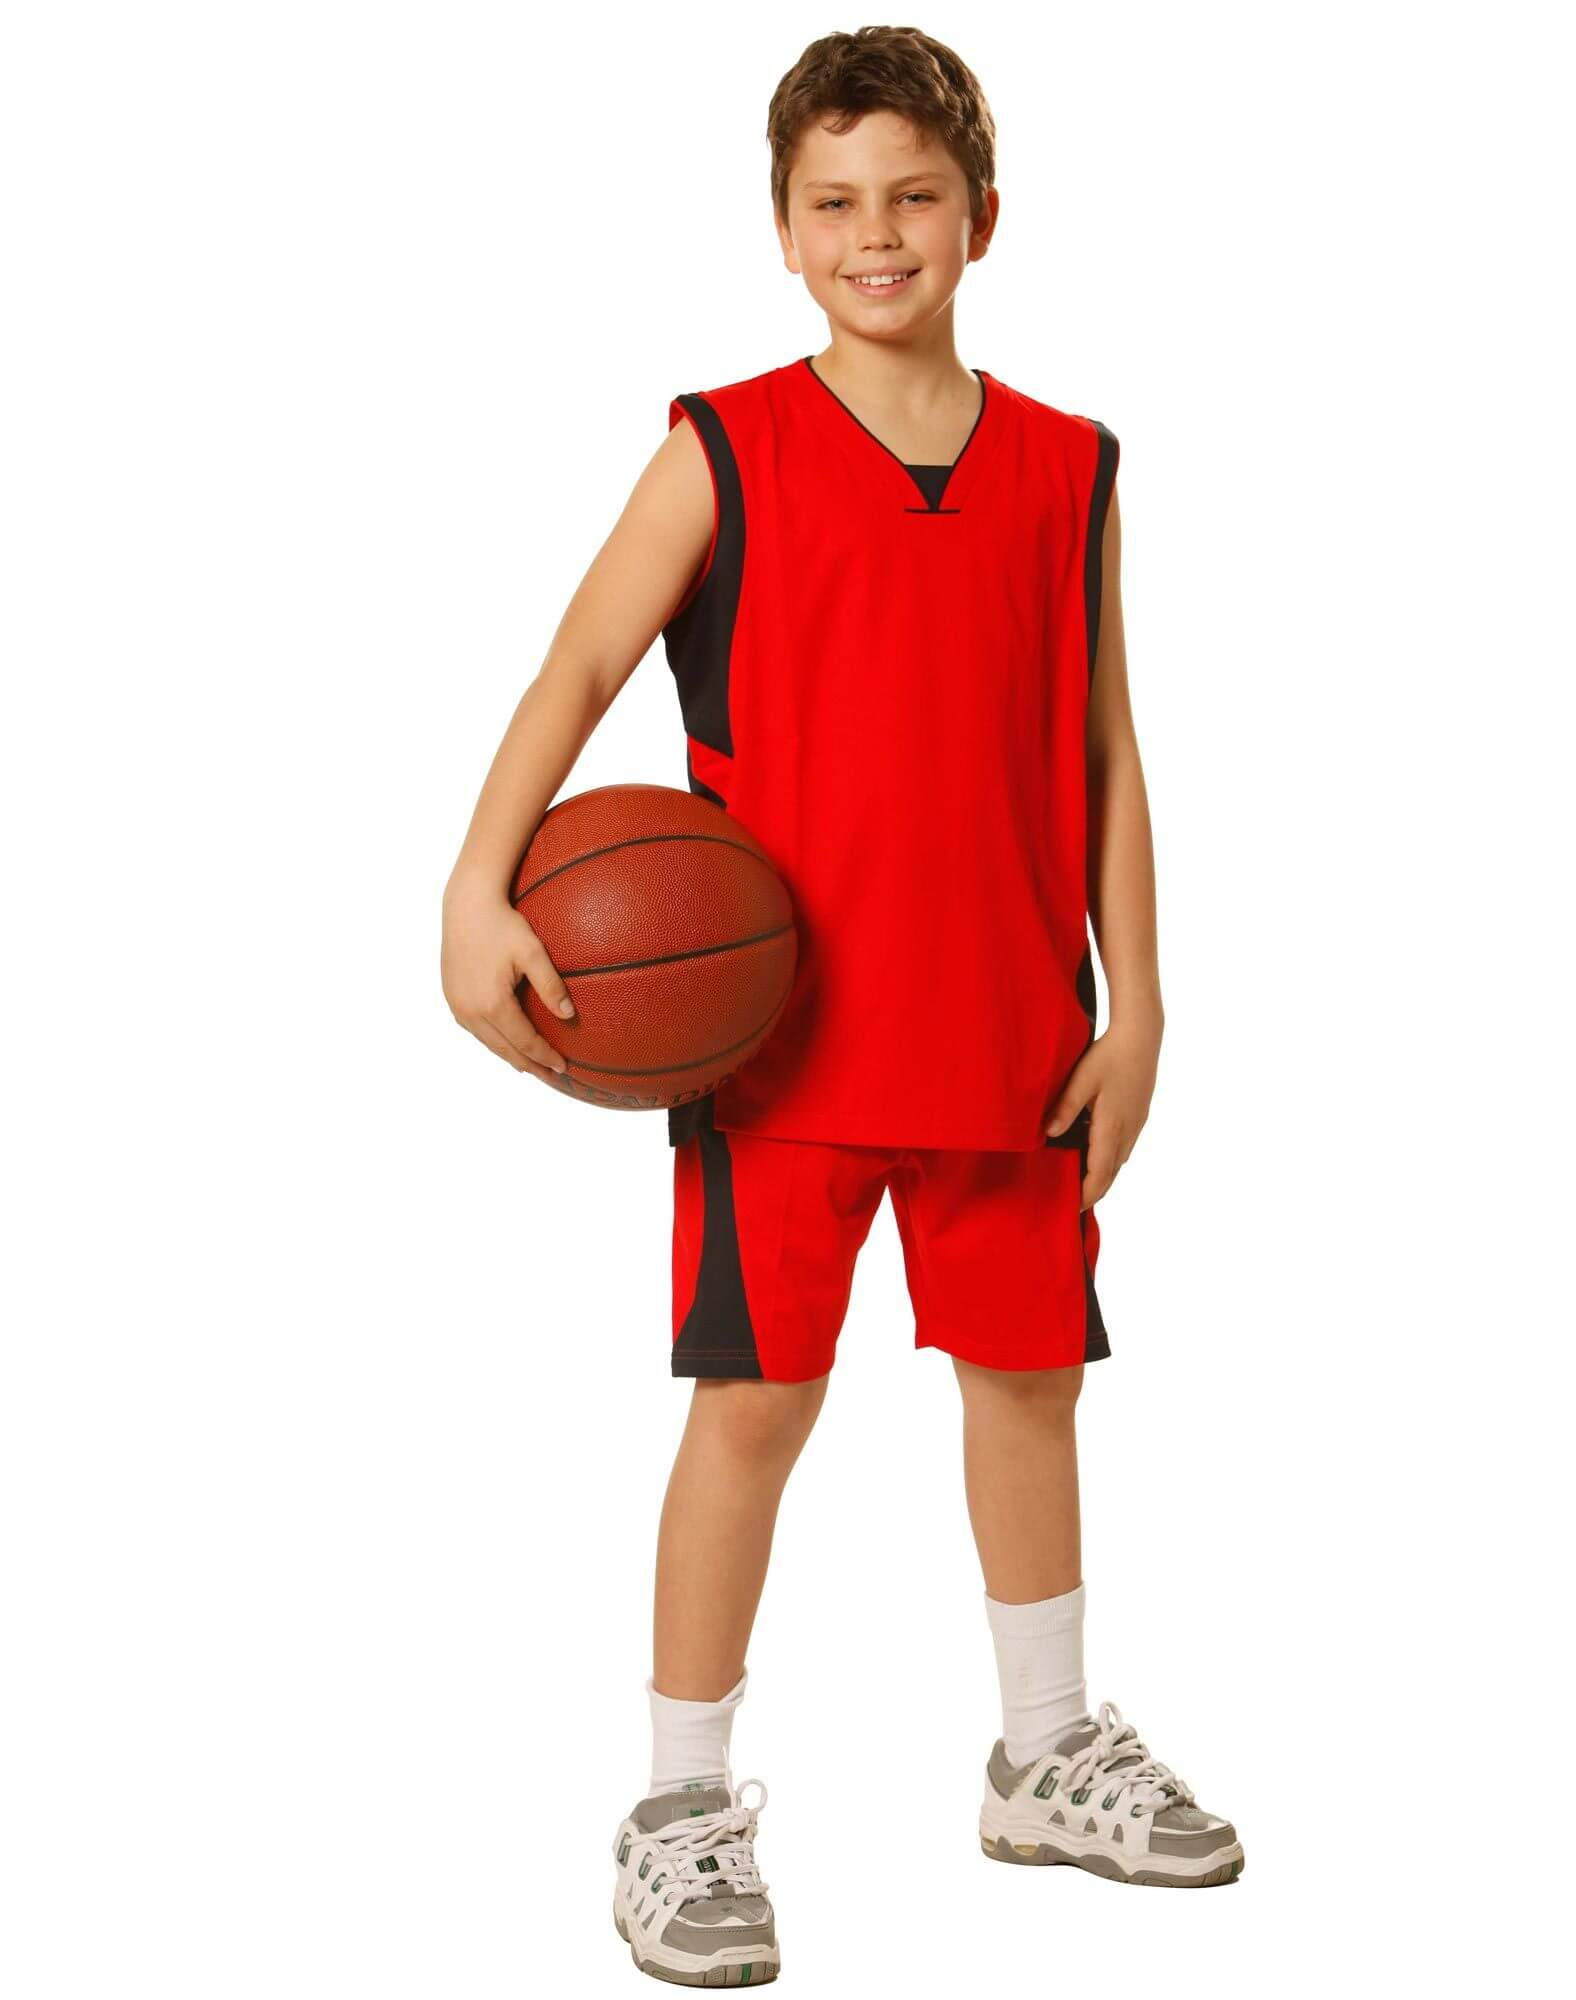 Kids Basketball Jerseys Manufacturers in Navi-mumbai